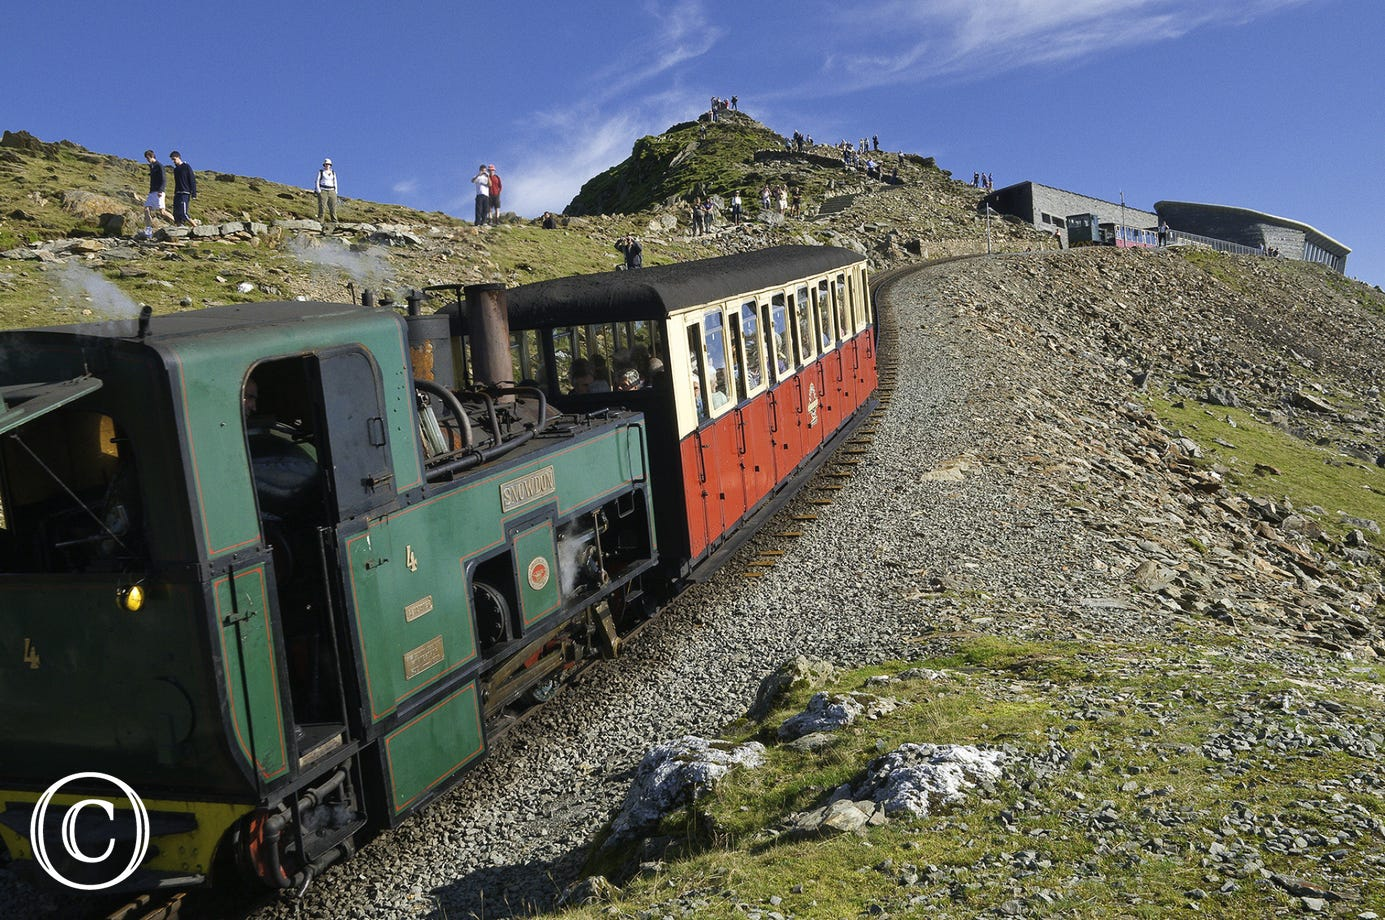 Mountain Railway heading towards the Snowdon (Yr Wyddfa) summit